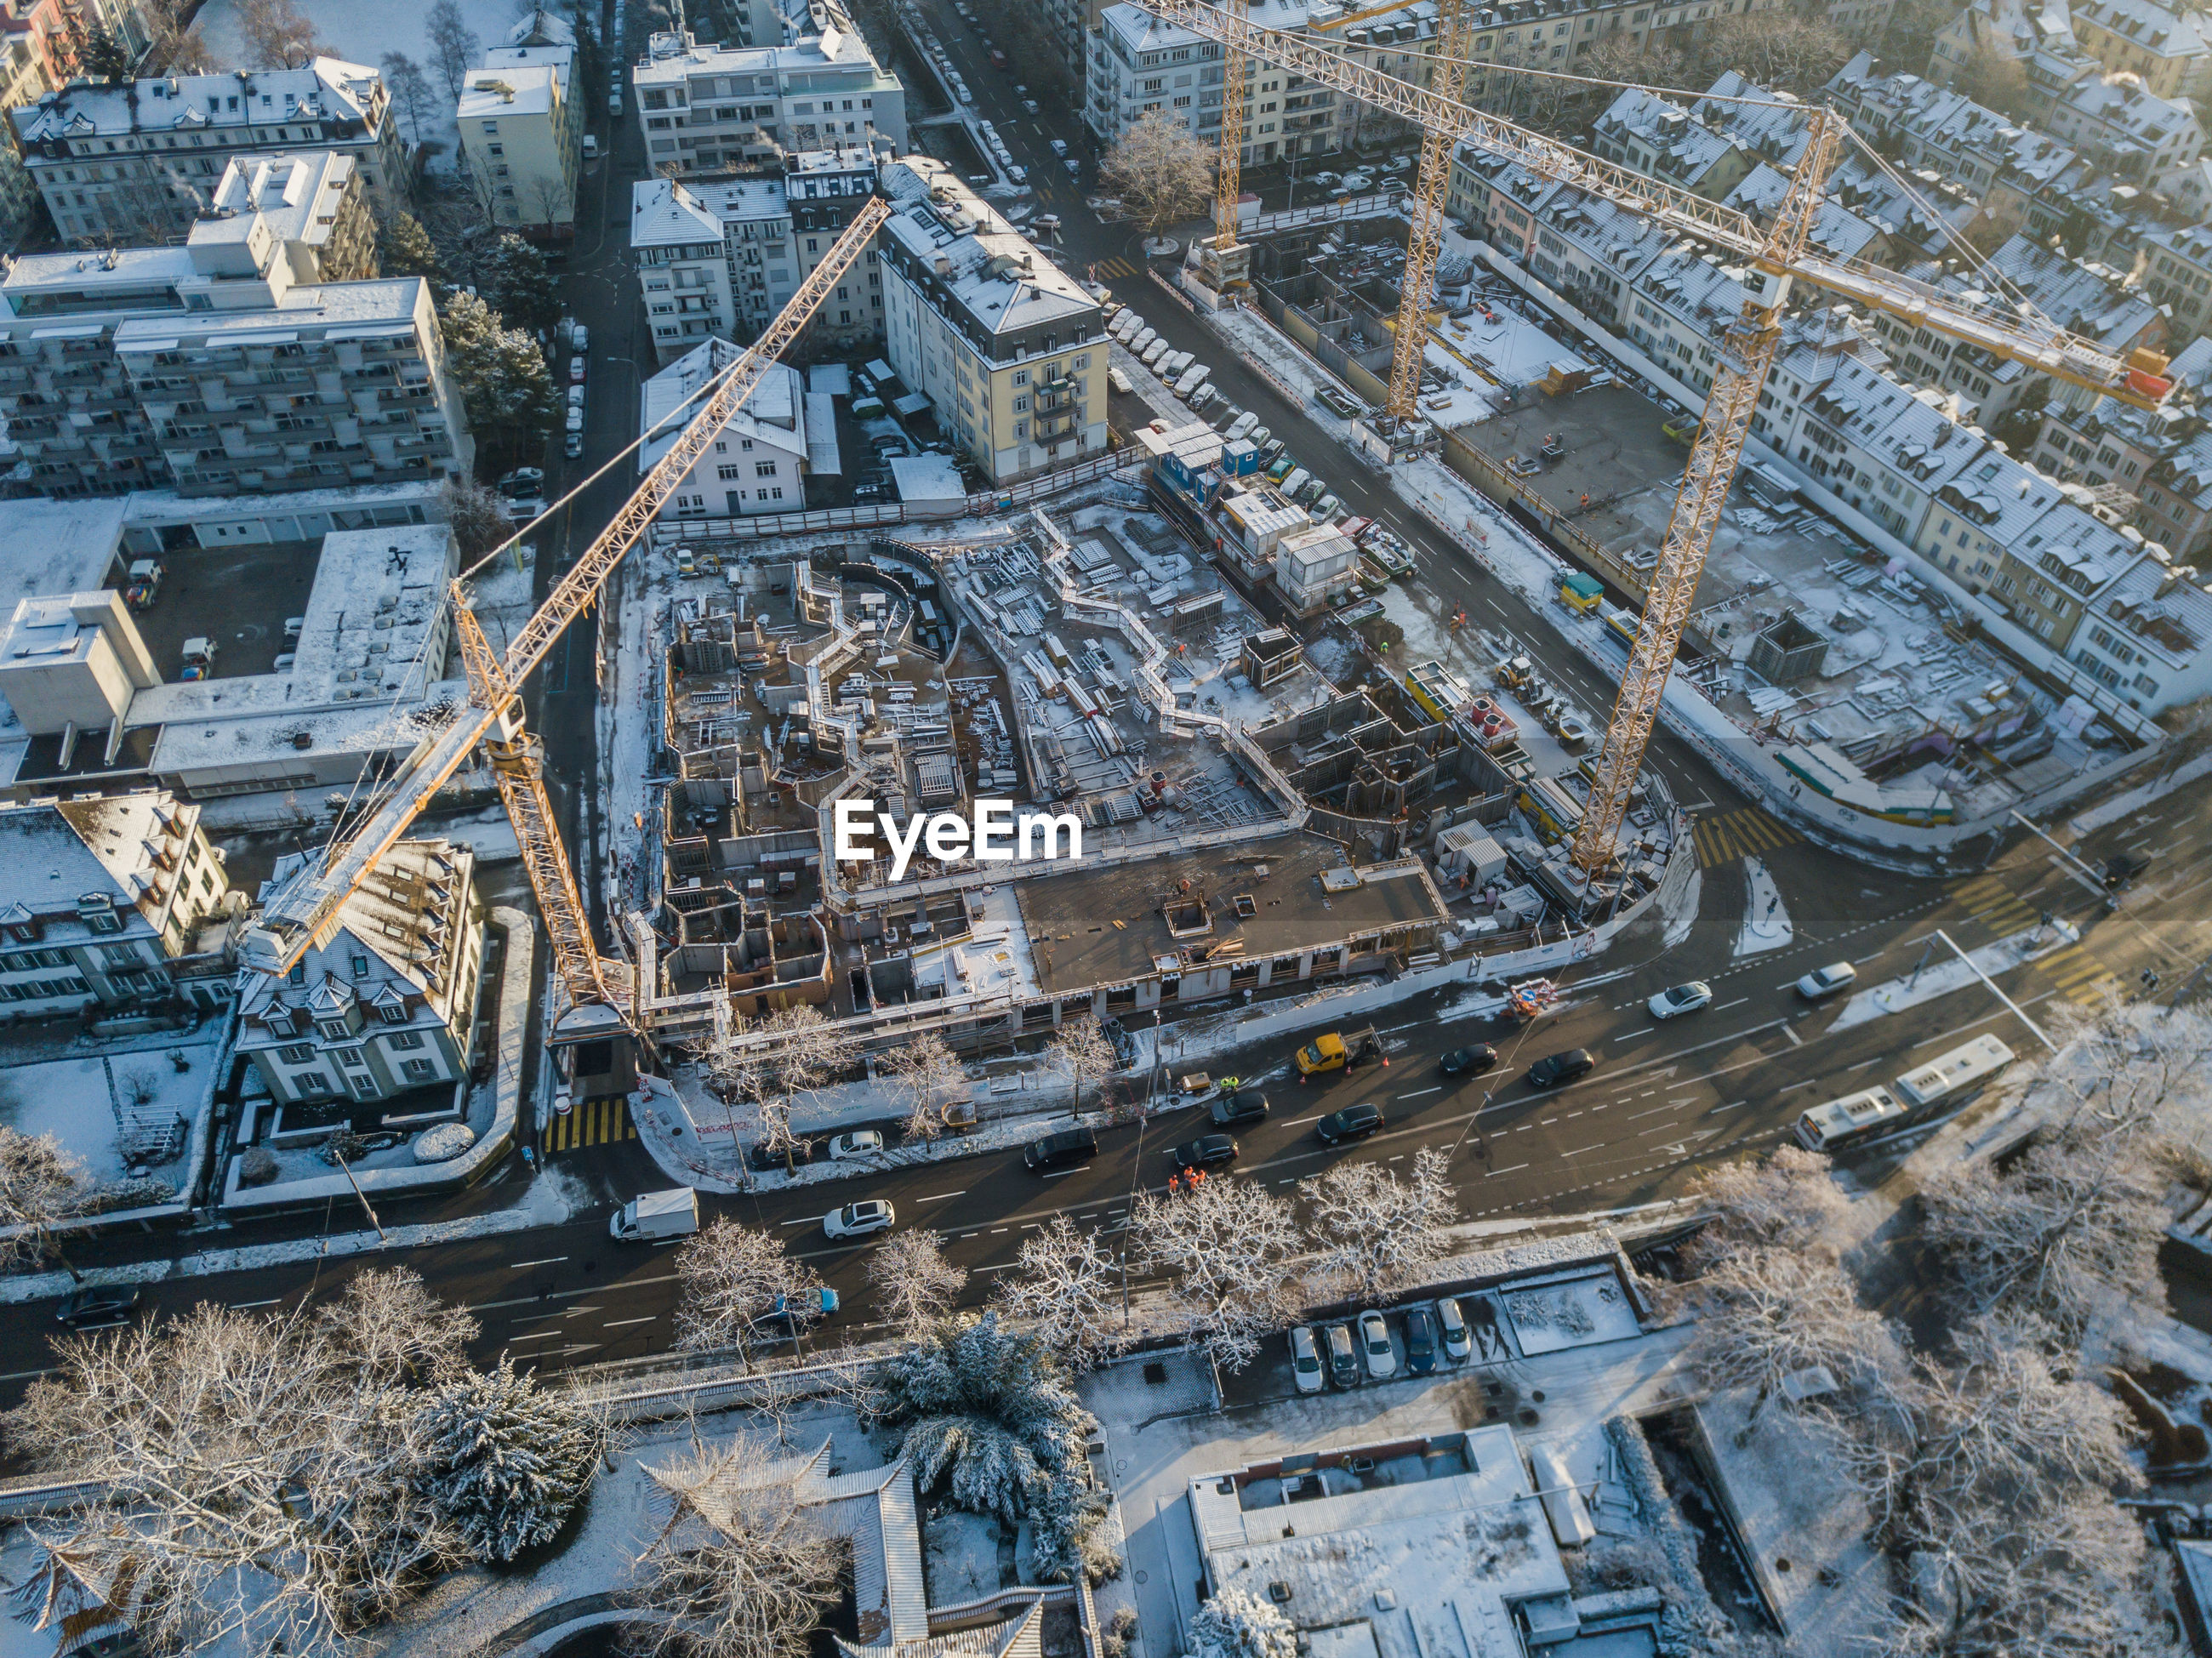 Aerial view of cranes and buildings in city during winter